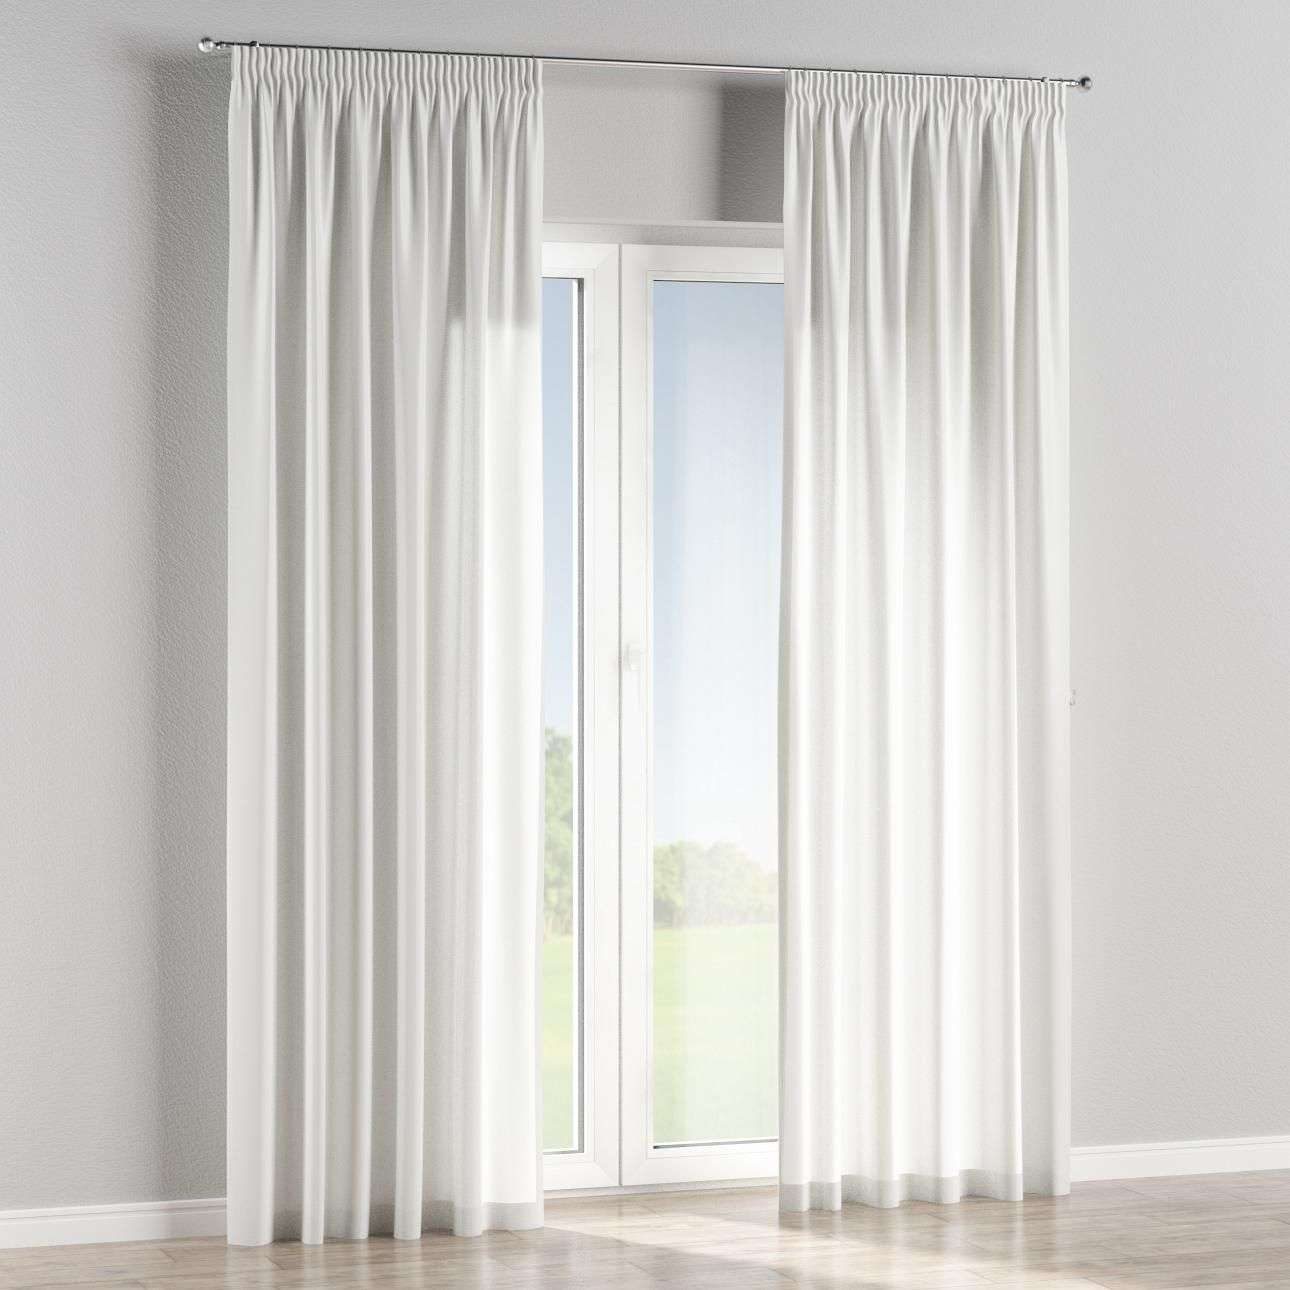 Pencil pleat lined curtains in collection Rustica, fabric: 138-25